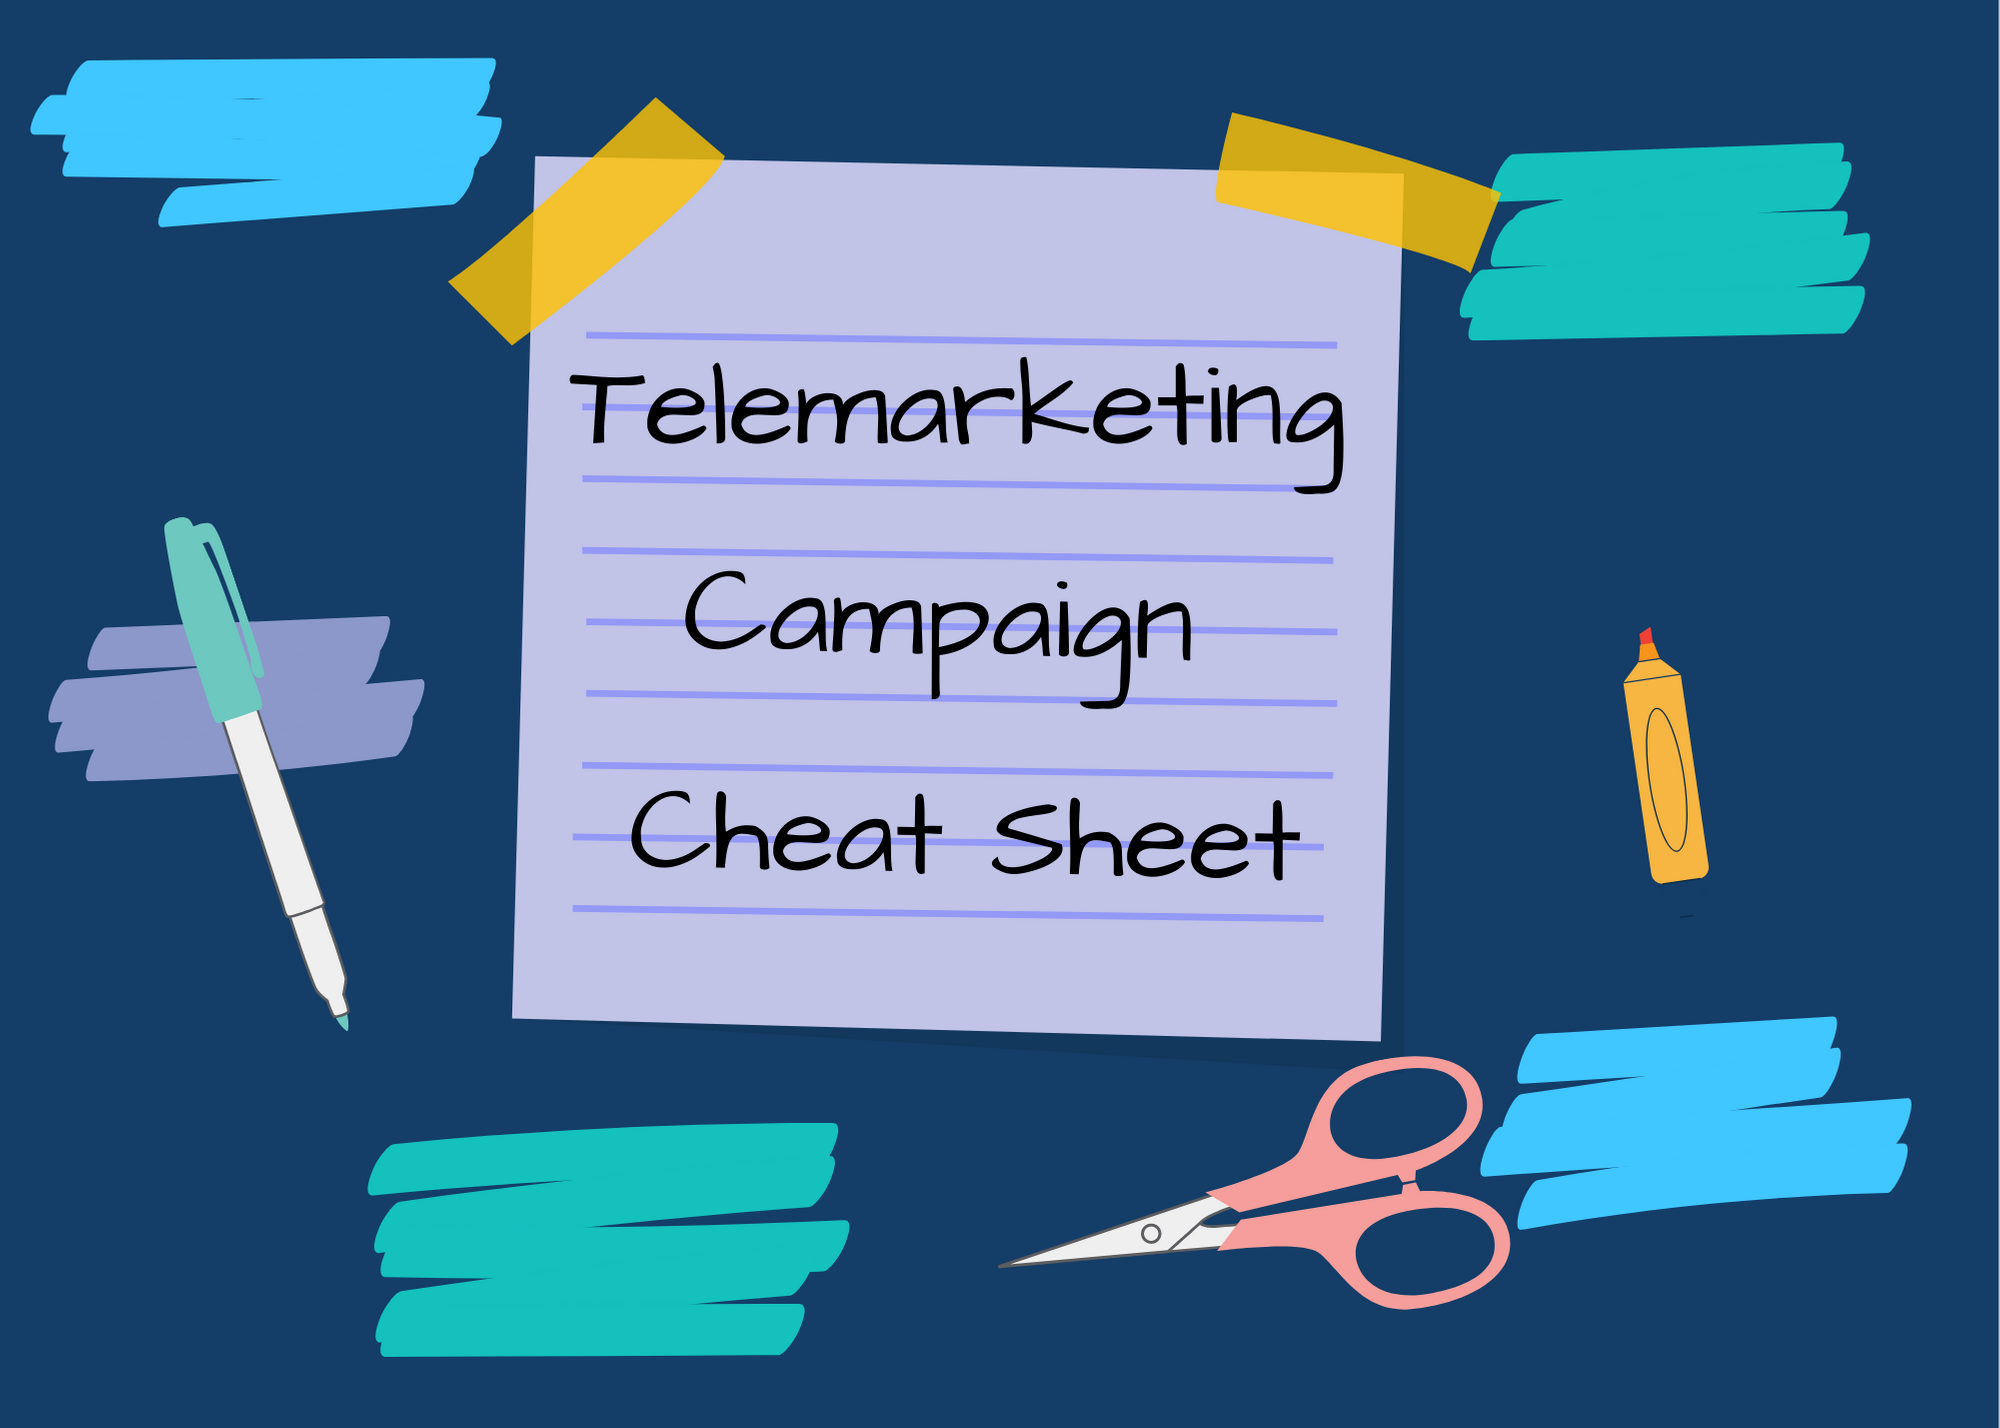 Telemarketing Campaign